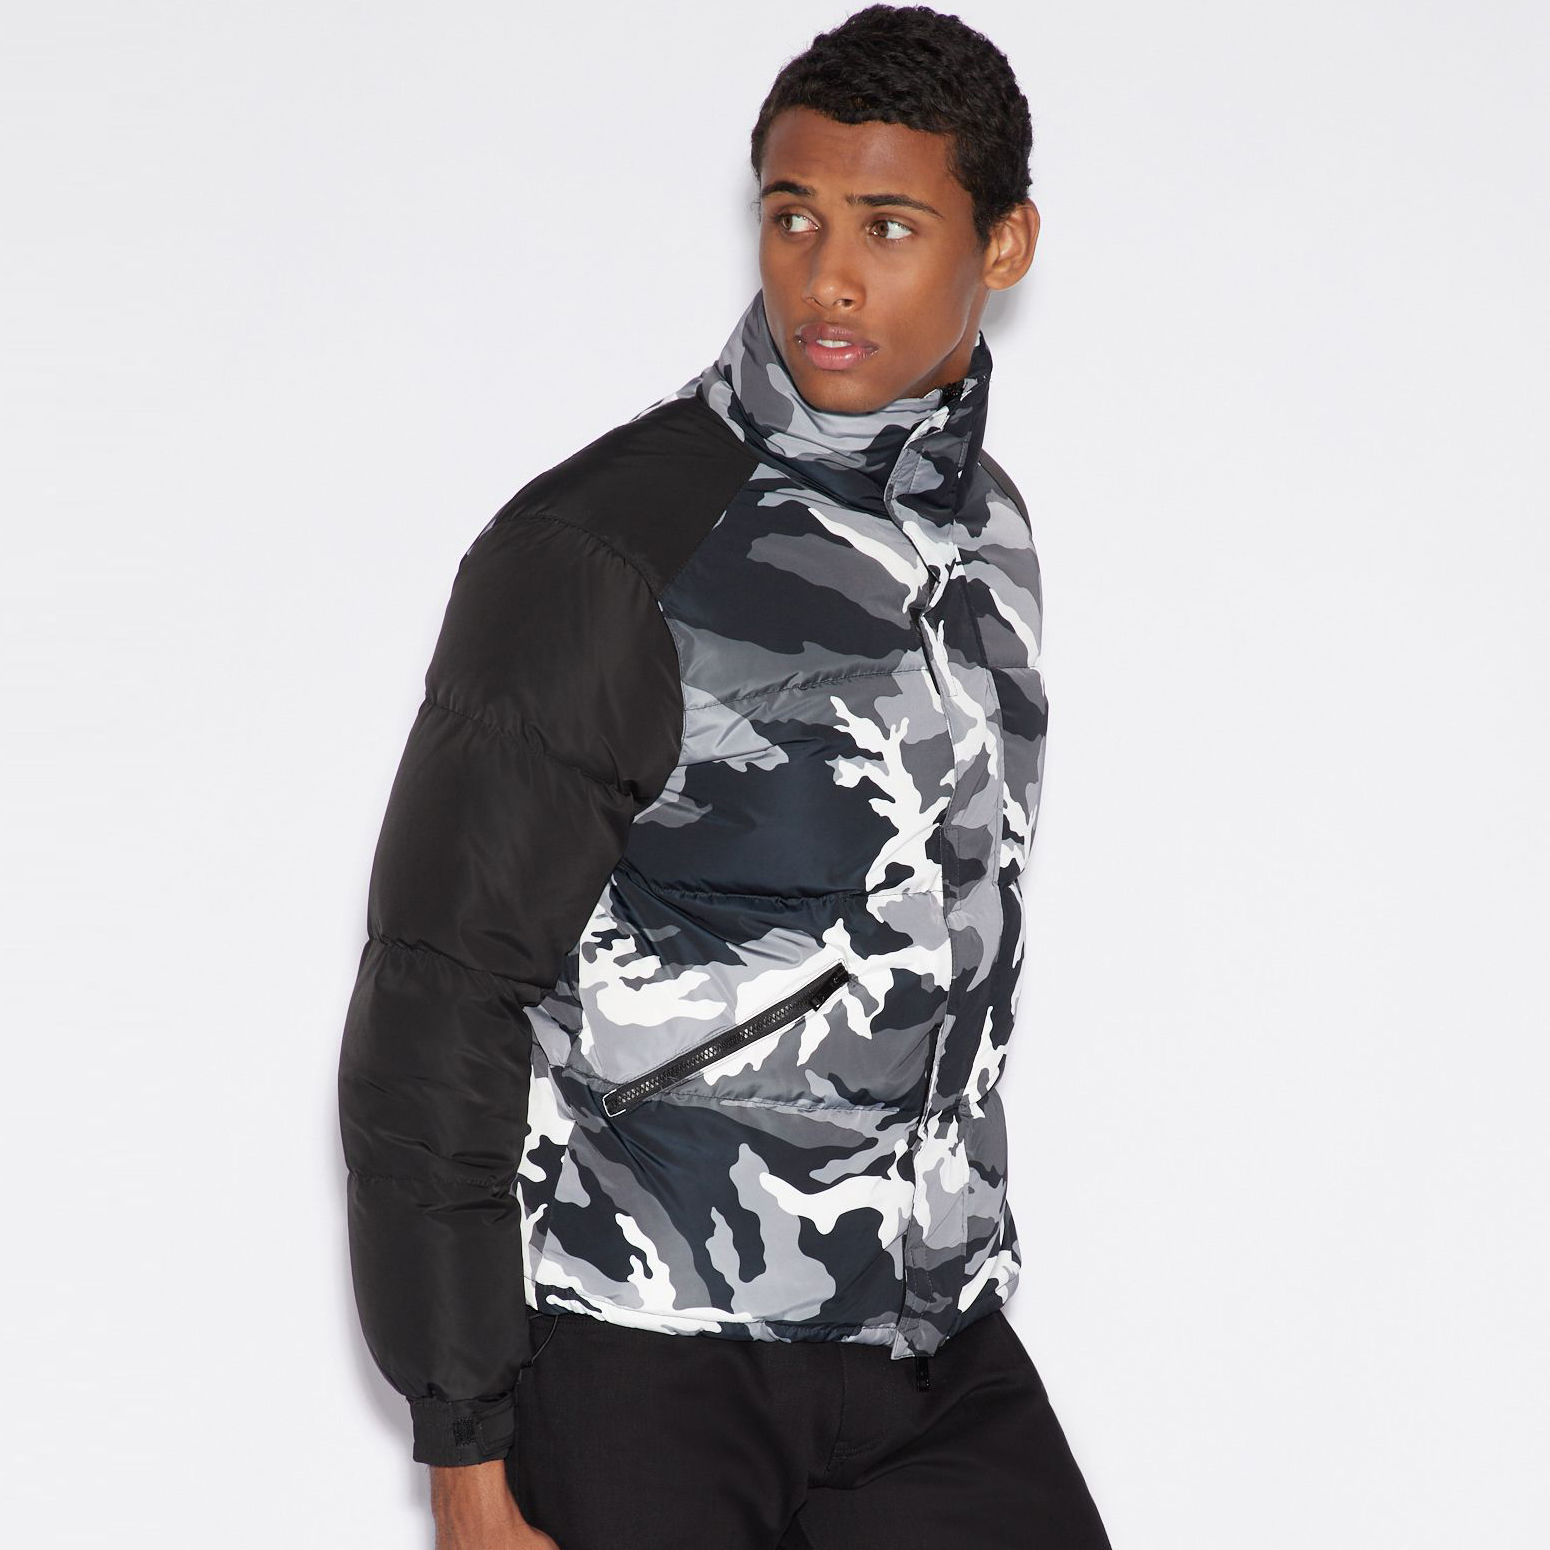 Armani Exchange Men S Clothing Accessories A X Store